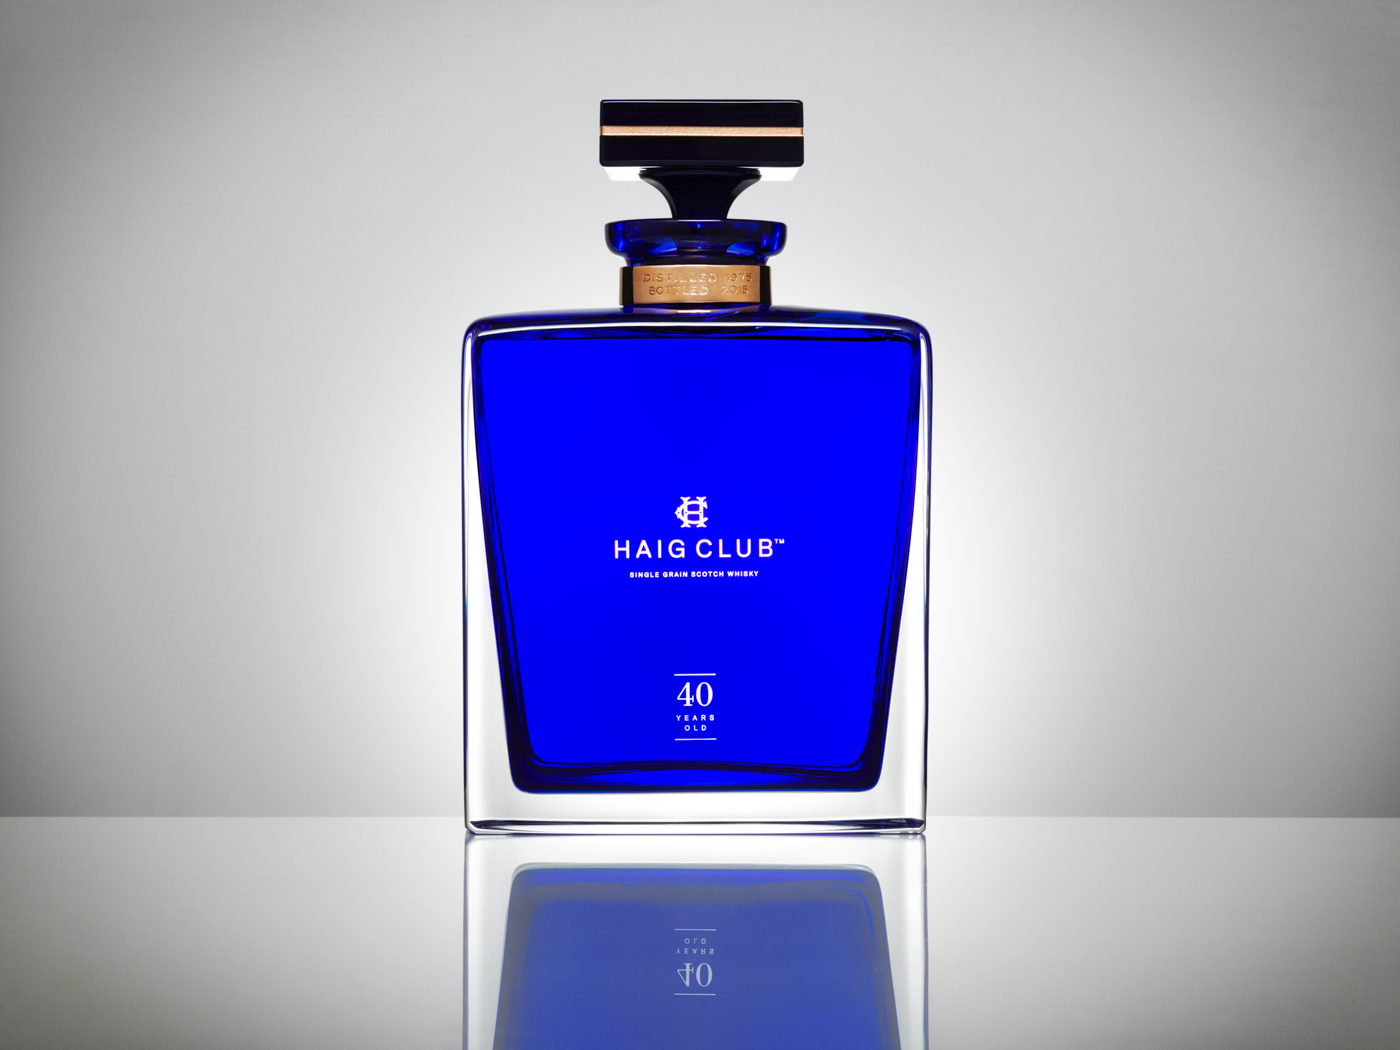 David Beckham's birthday present from Haig Club. I photographed the creation of this bottle from start to finish, from the blowing of the glass to the gifting on his birthday.